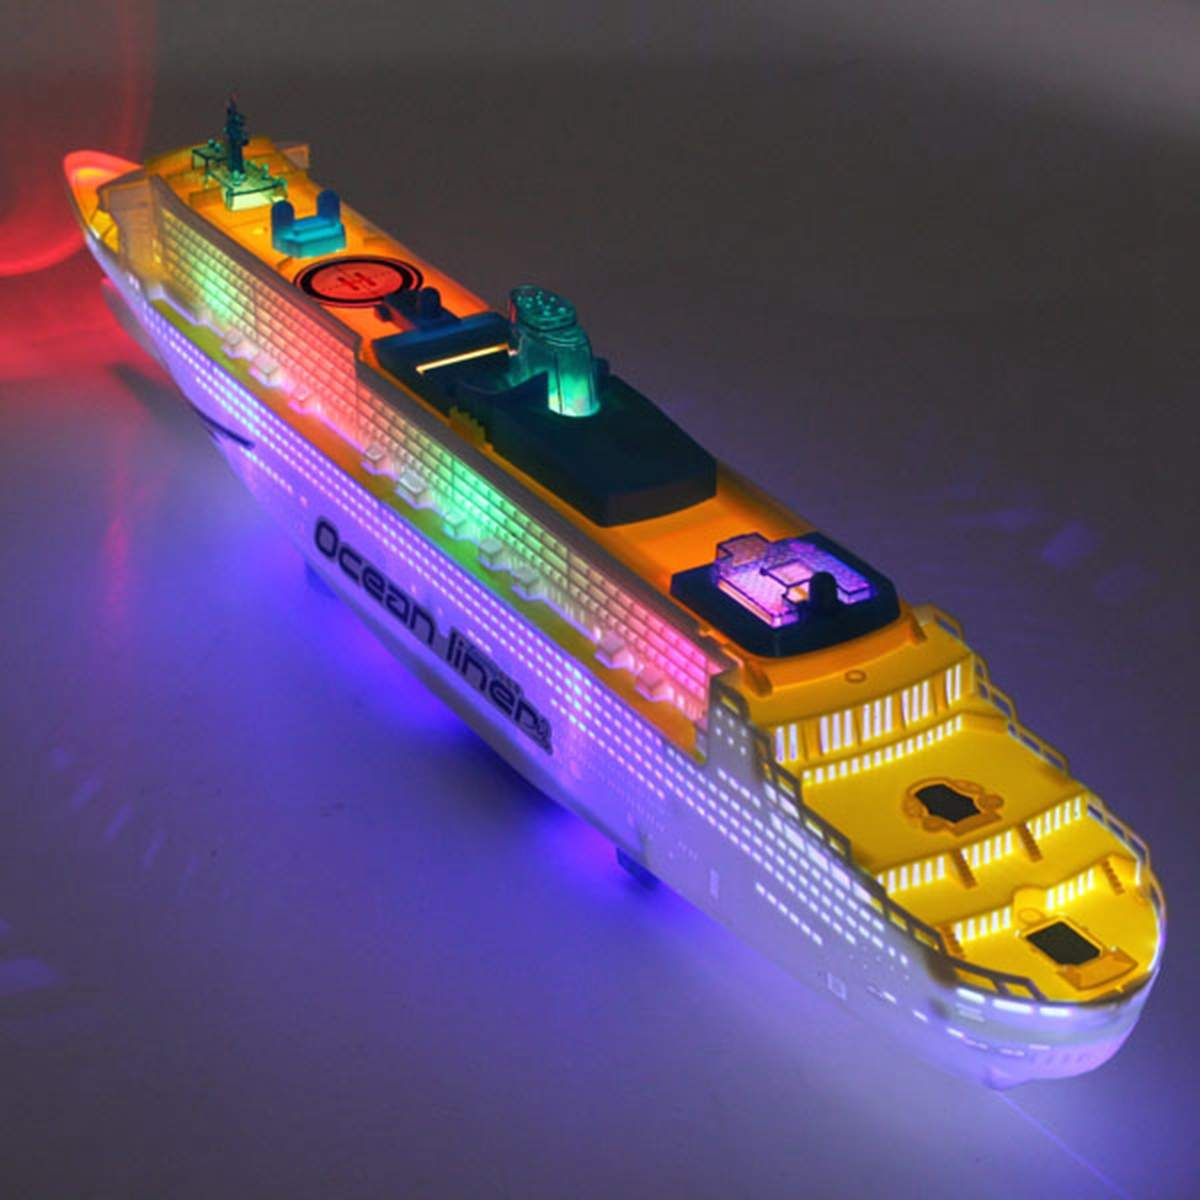 OCEAN LINER CRUISE SHIP BOAT ELECTRIC TOY FLASH LED LIGHT SOUND KID CHILD US